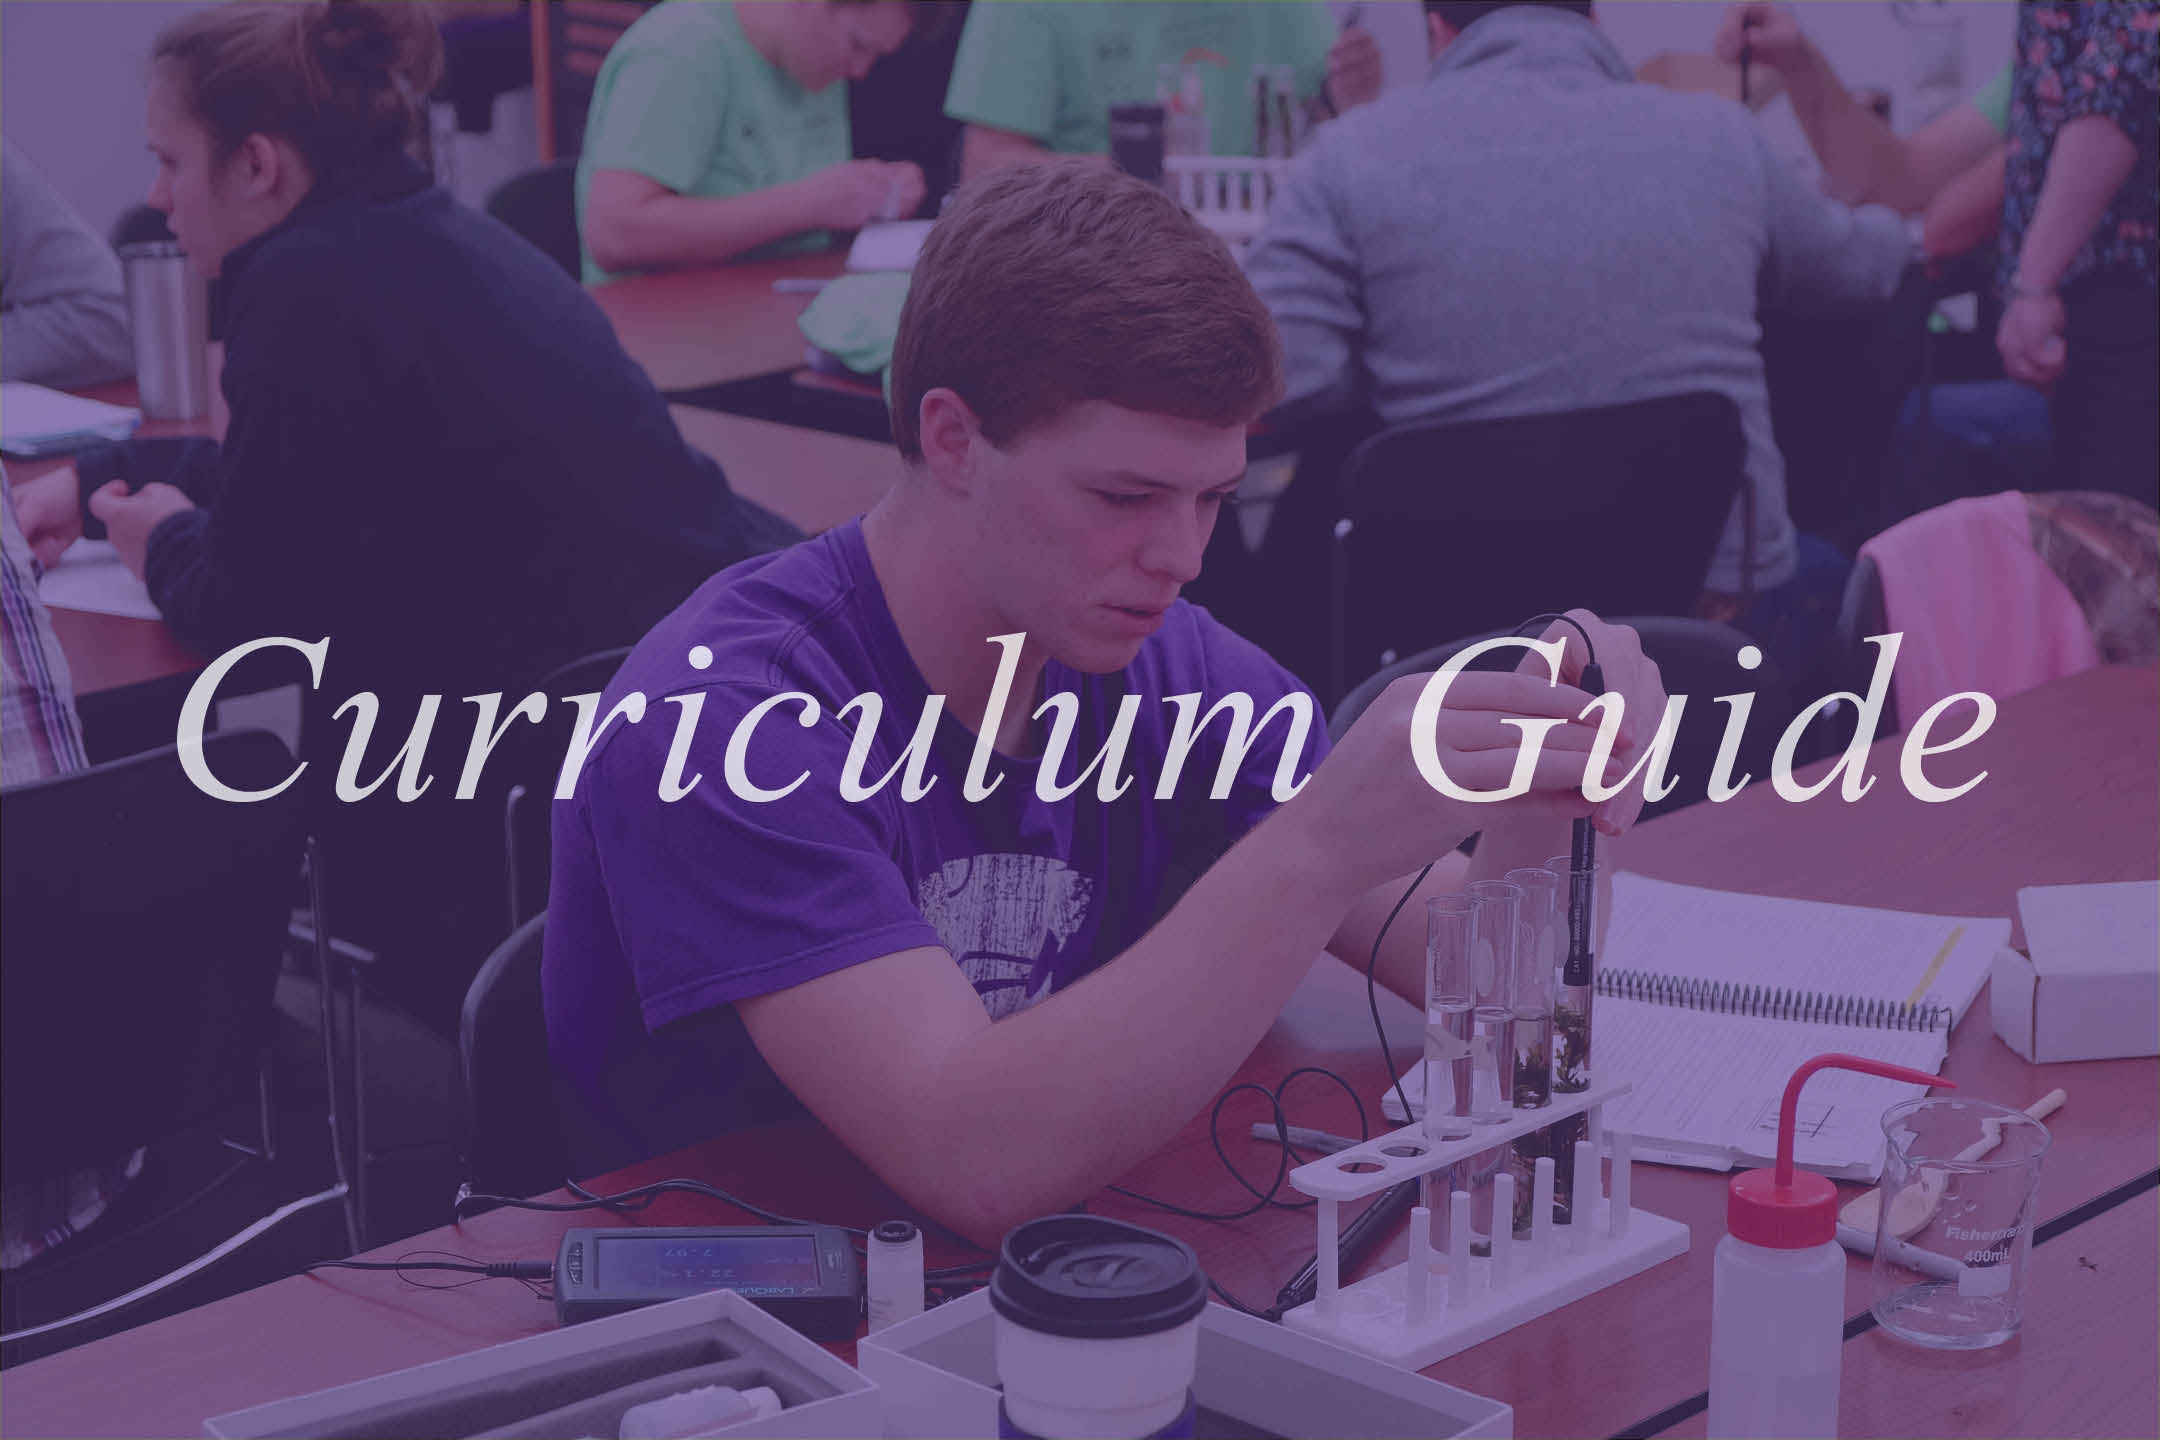 Agricultural Education Curriculum Guide